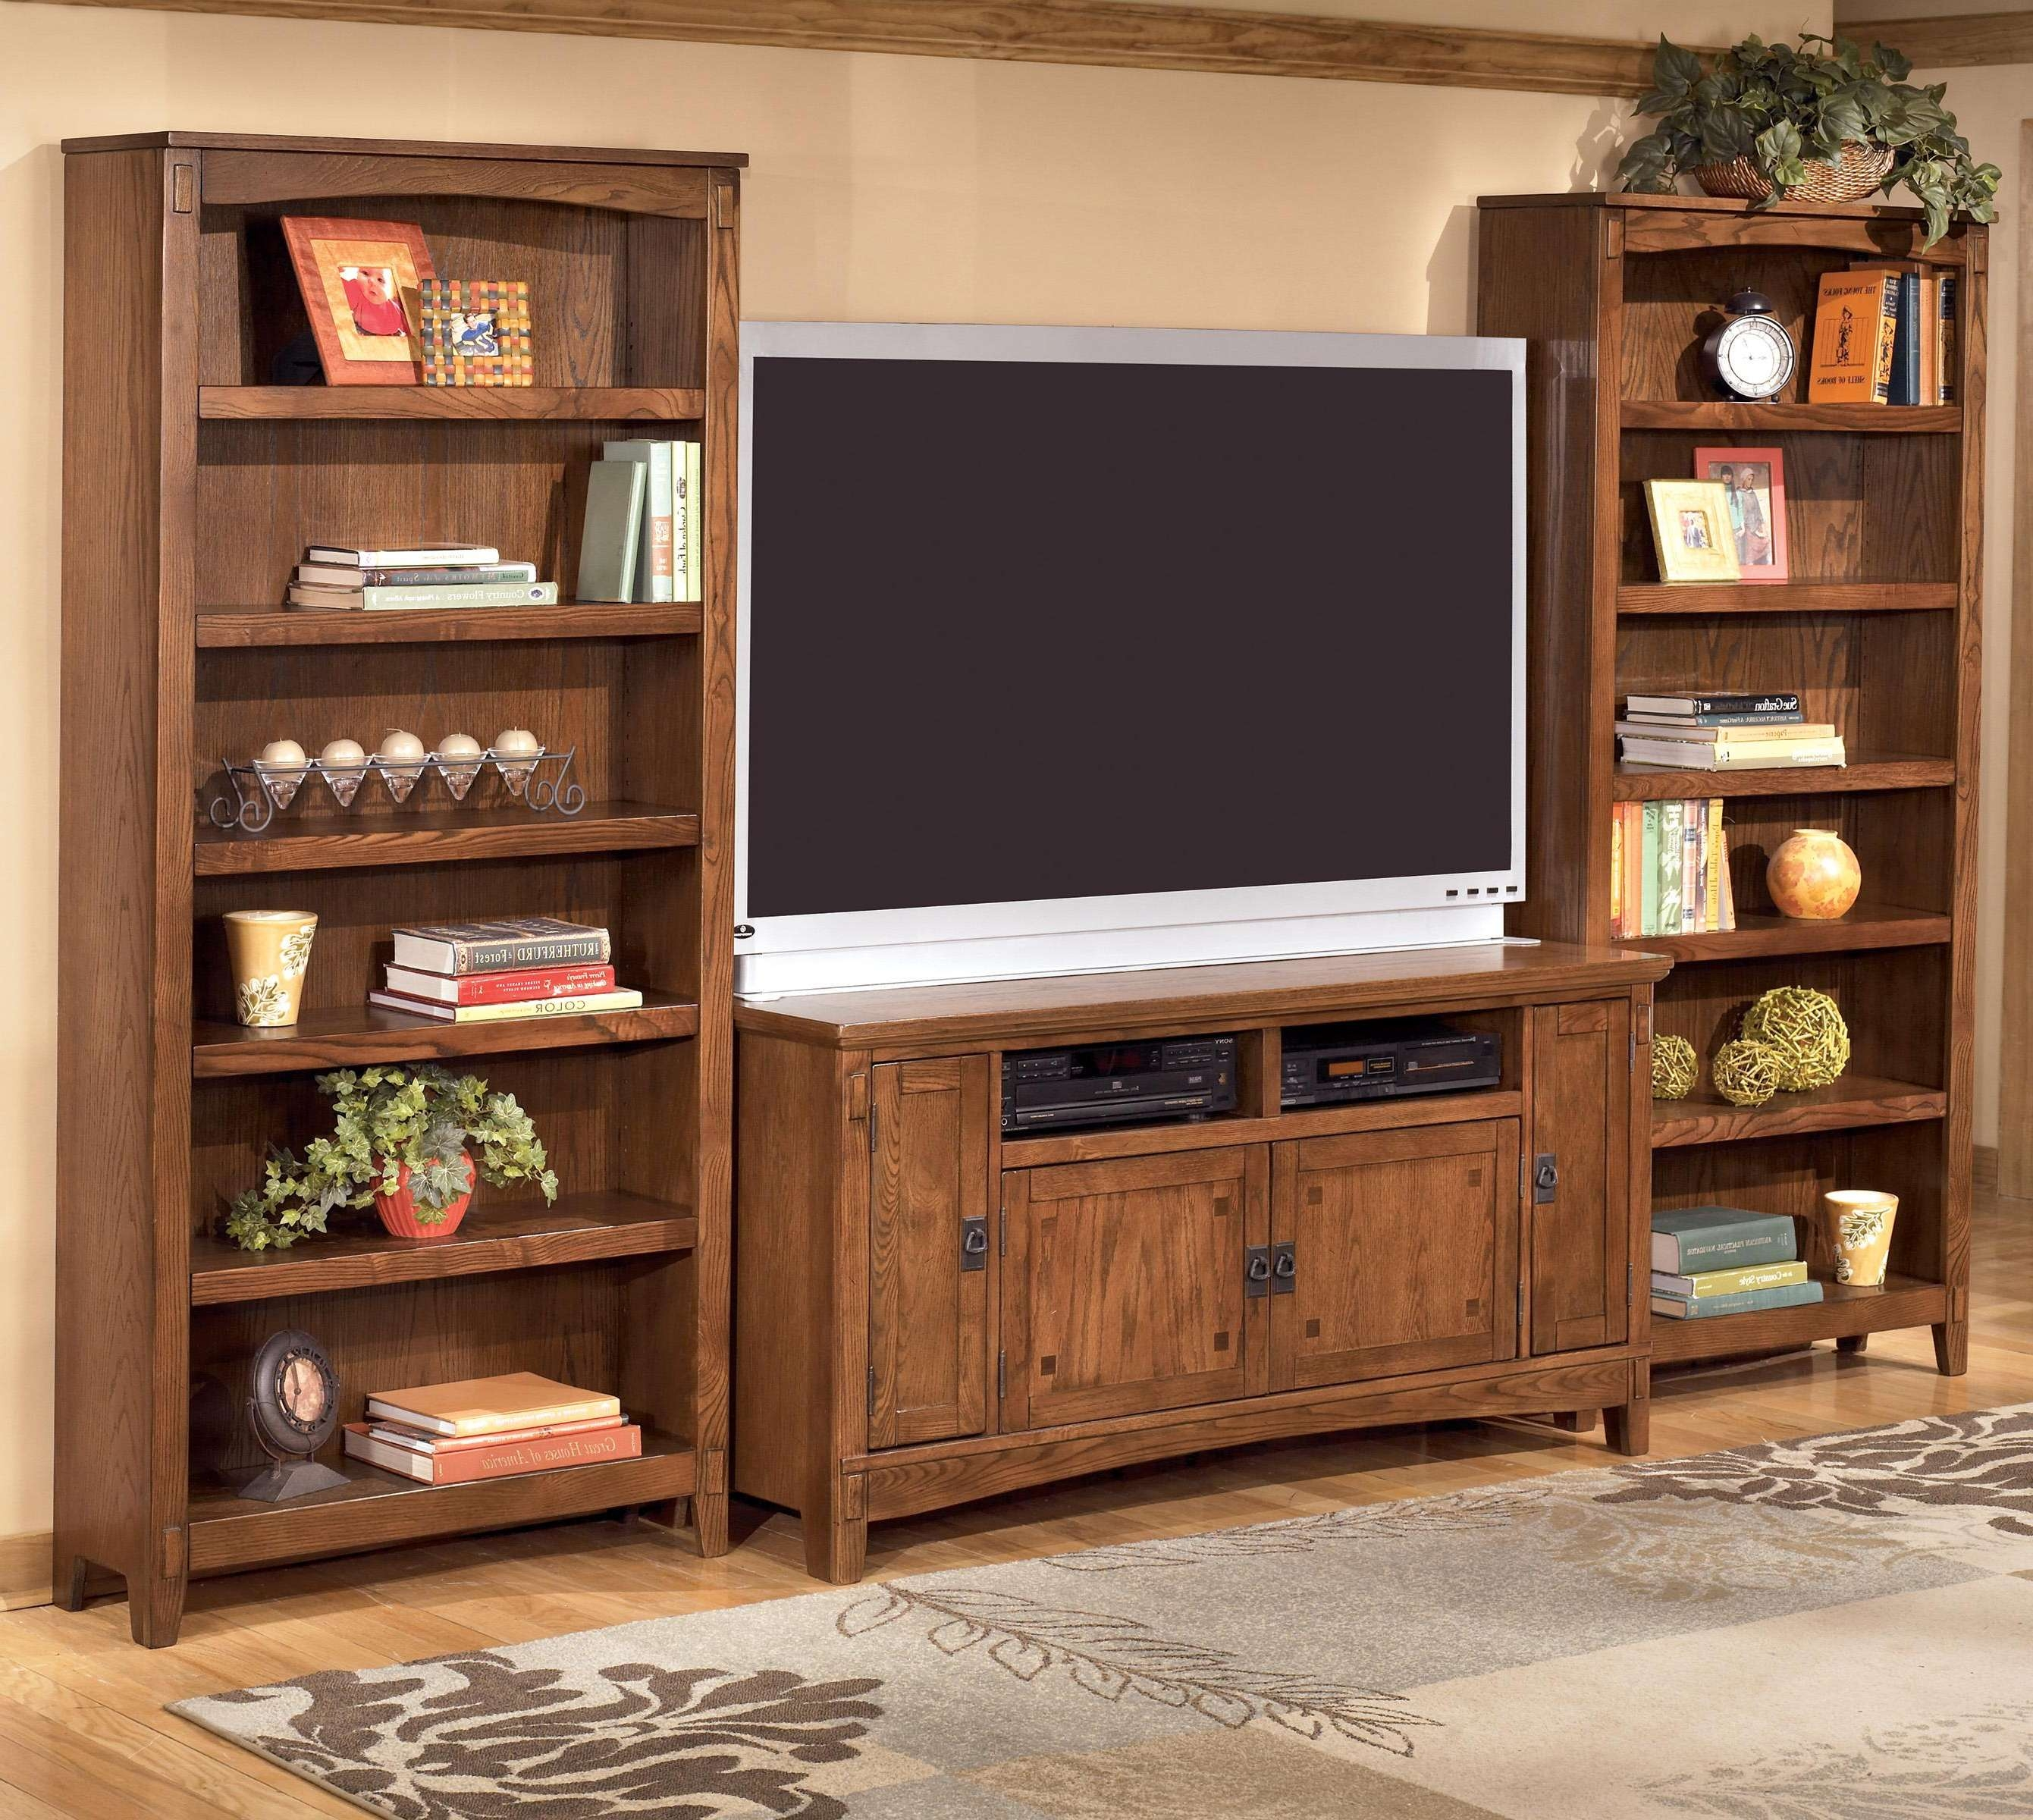 Wall Units: Astonishing Bookcase Entertainment Unit Bookshelf Within Tv Stands And Bookshelf (View 13 of 15)